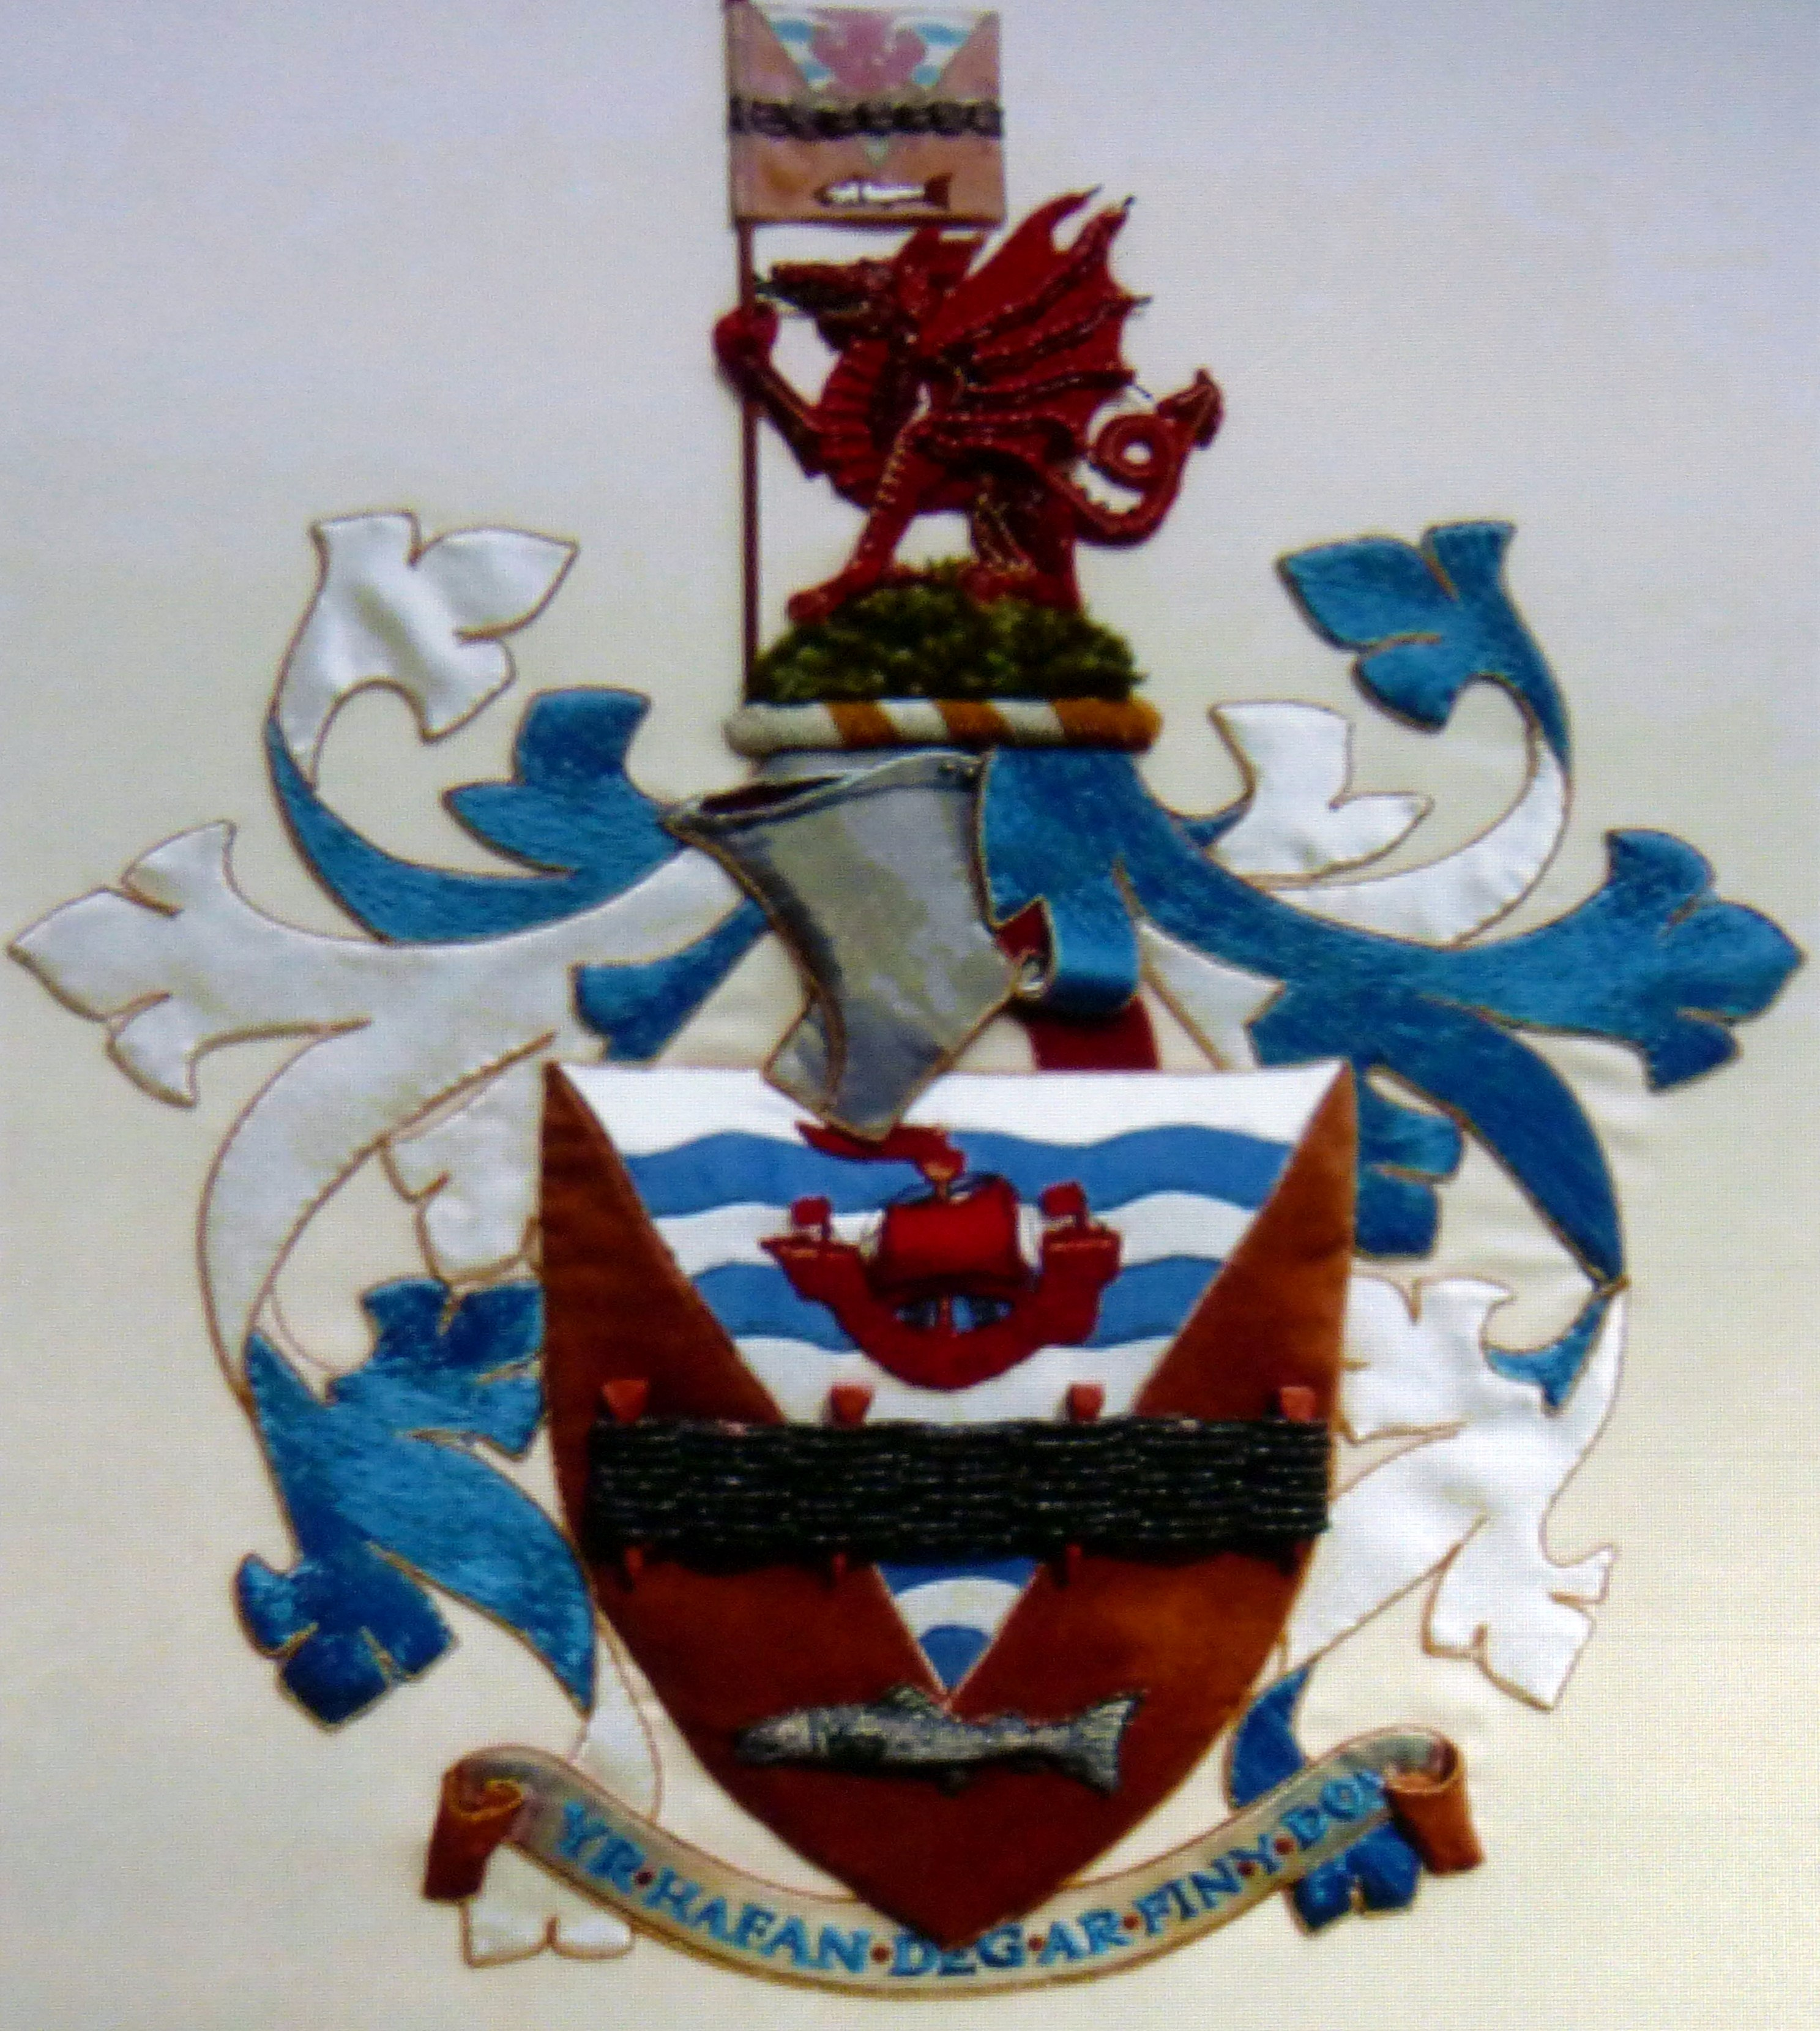 slide showing Rhyl coat of arms embroidered by Moya McCarthy and members of N.Wales EG